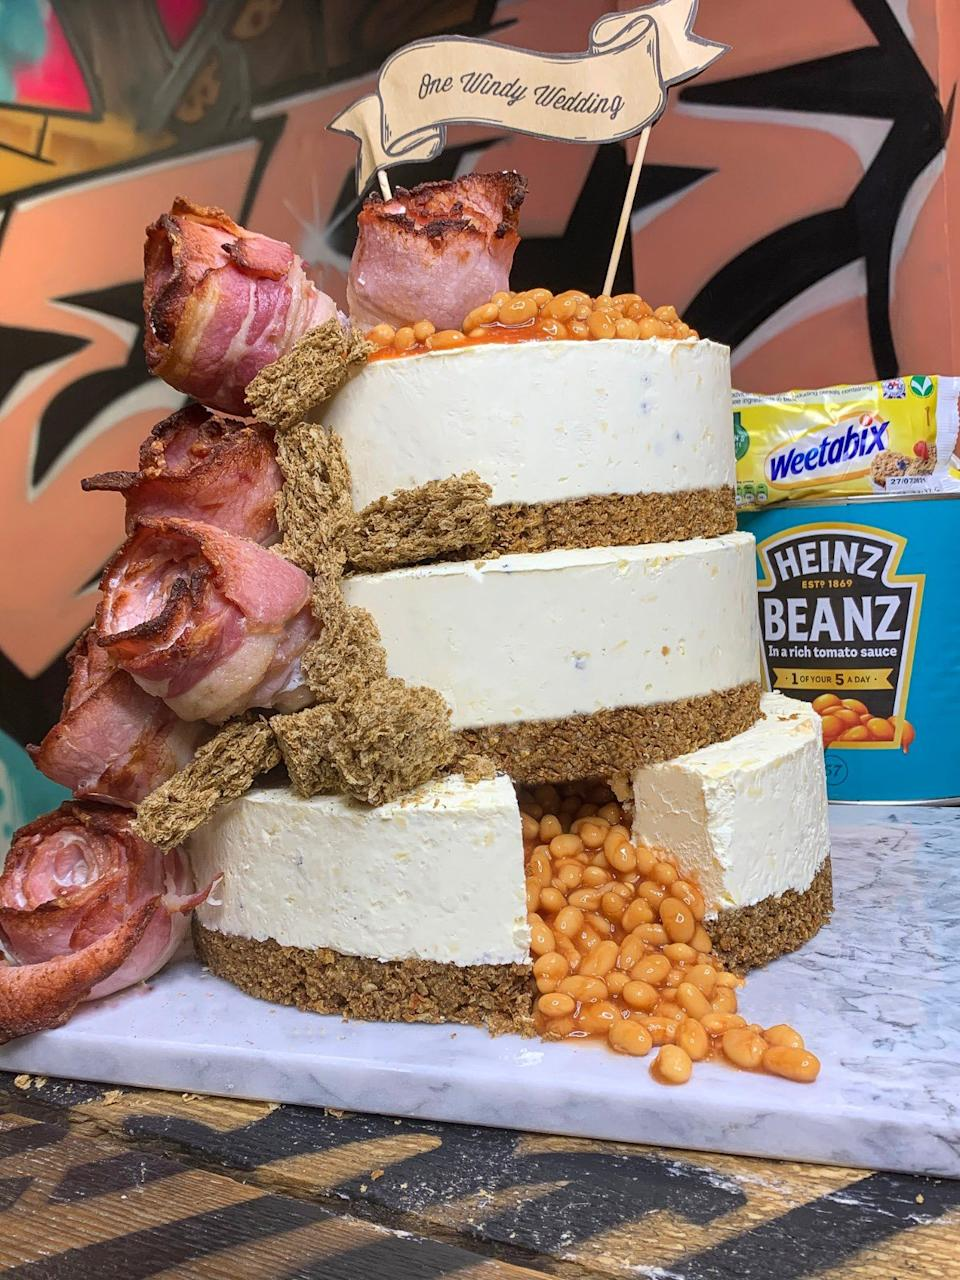 A cake, which features bacon flowers with UK Weetabix and Heinz Beanz, is going viral for all the wrong reasons. Photo: Twitter/Pleesecakes